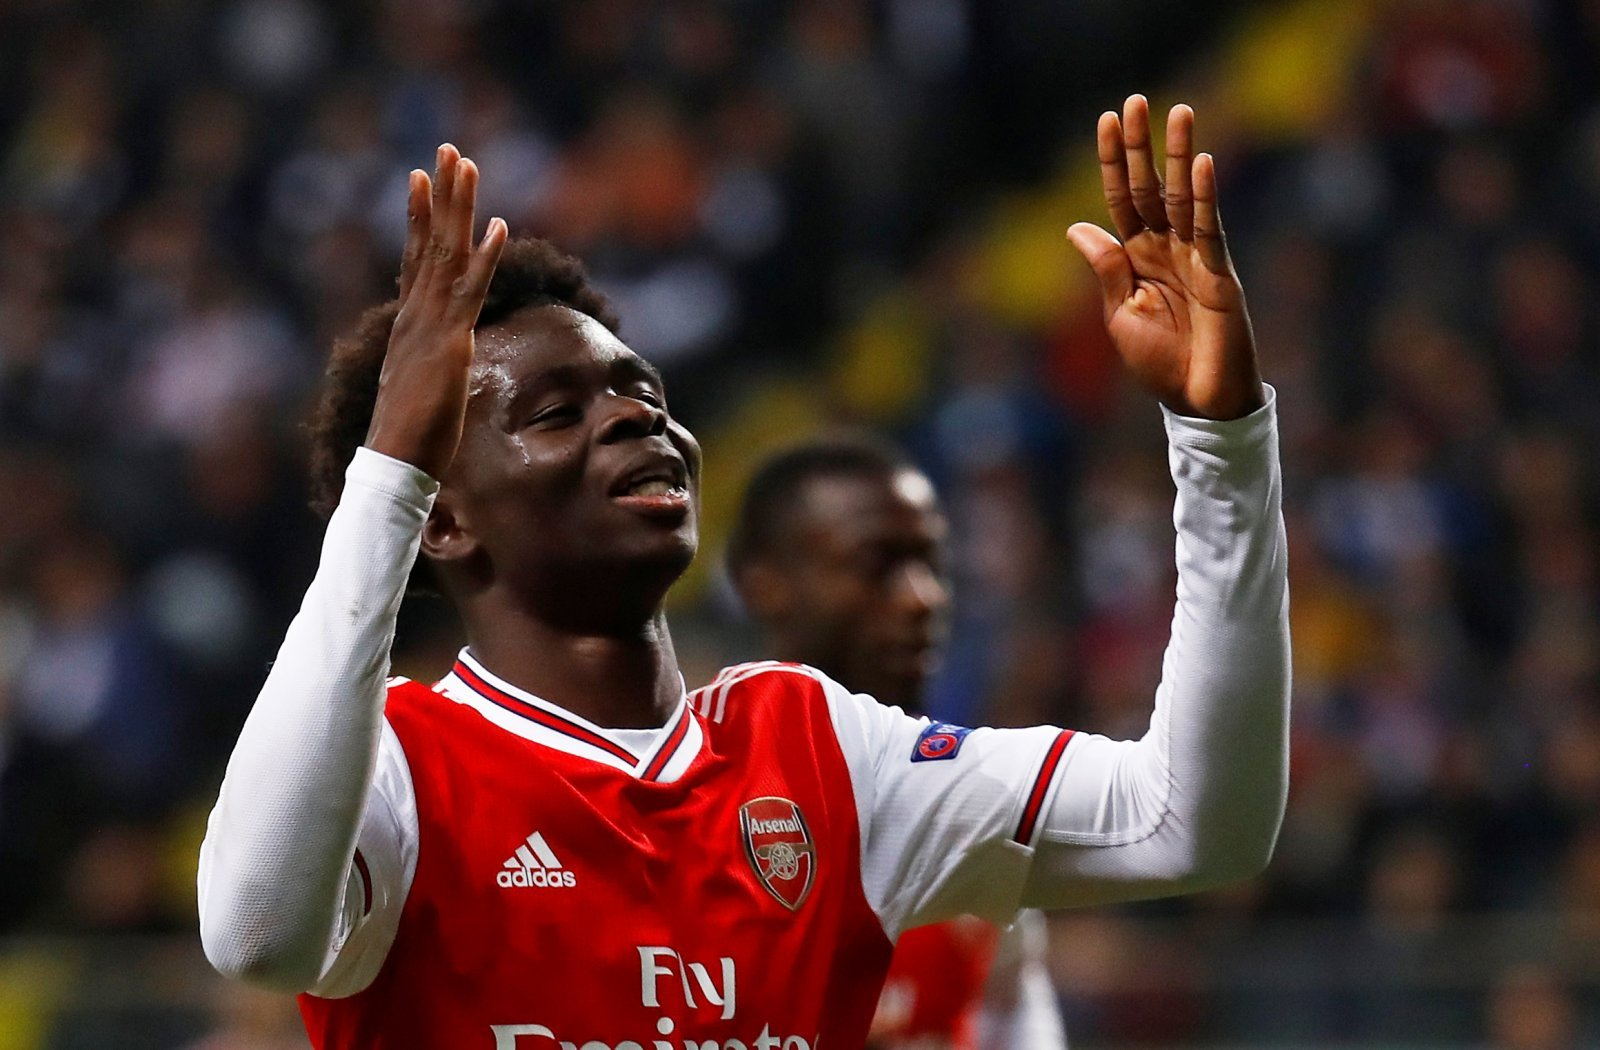 Arsenal: Fans rave over Bukayo Saka after performance in draw against Manchester United